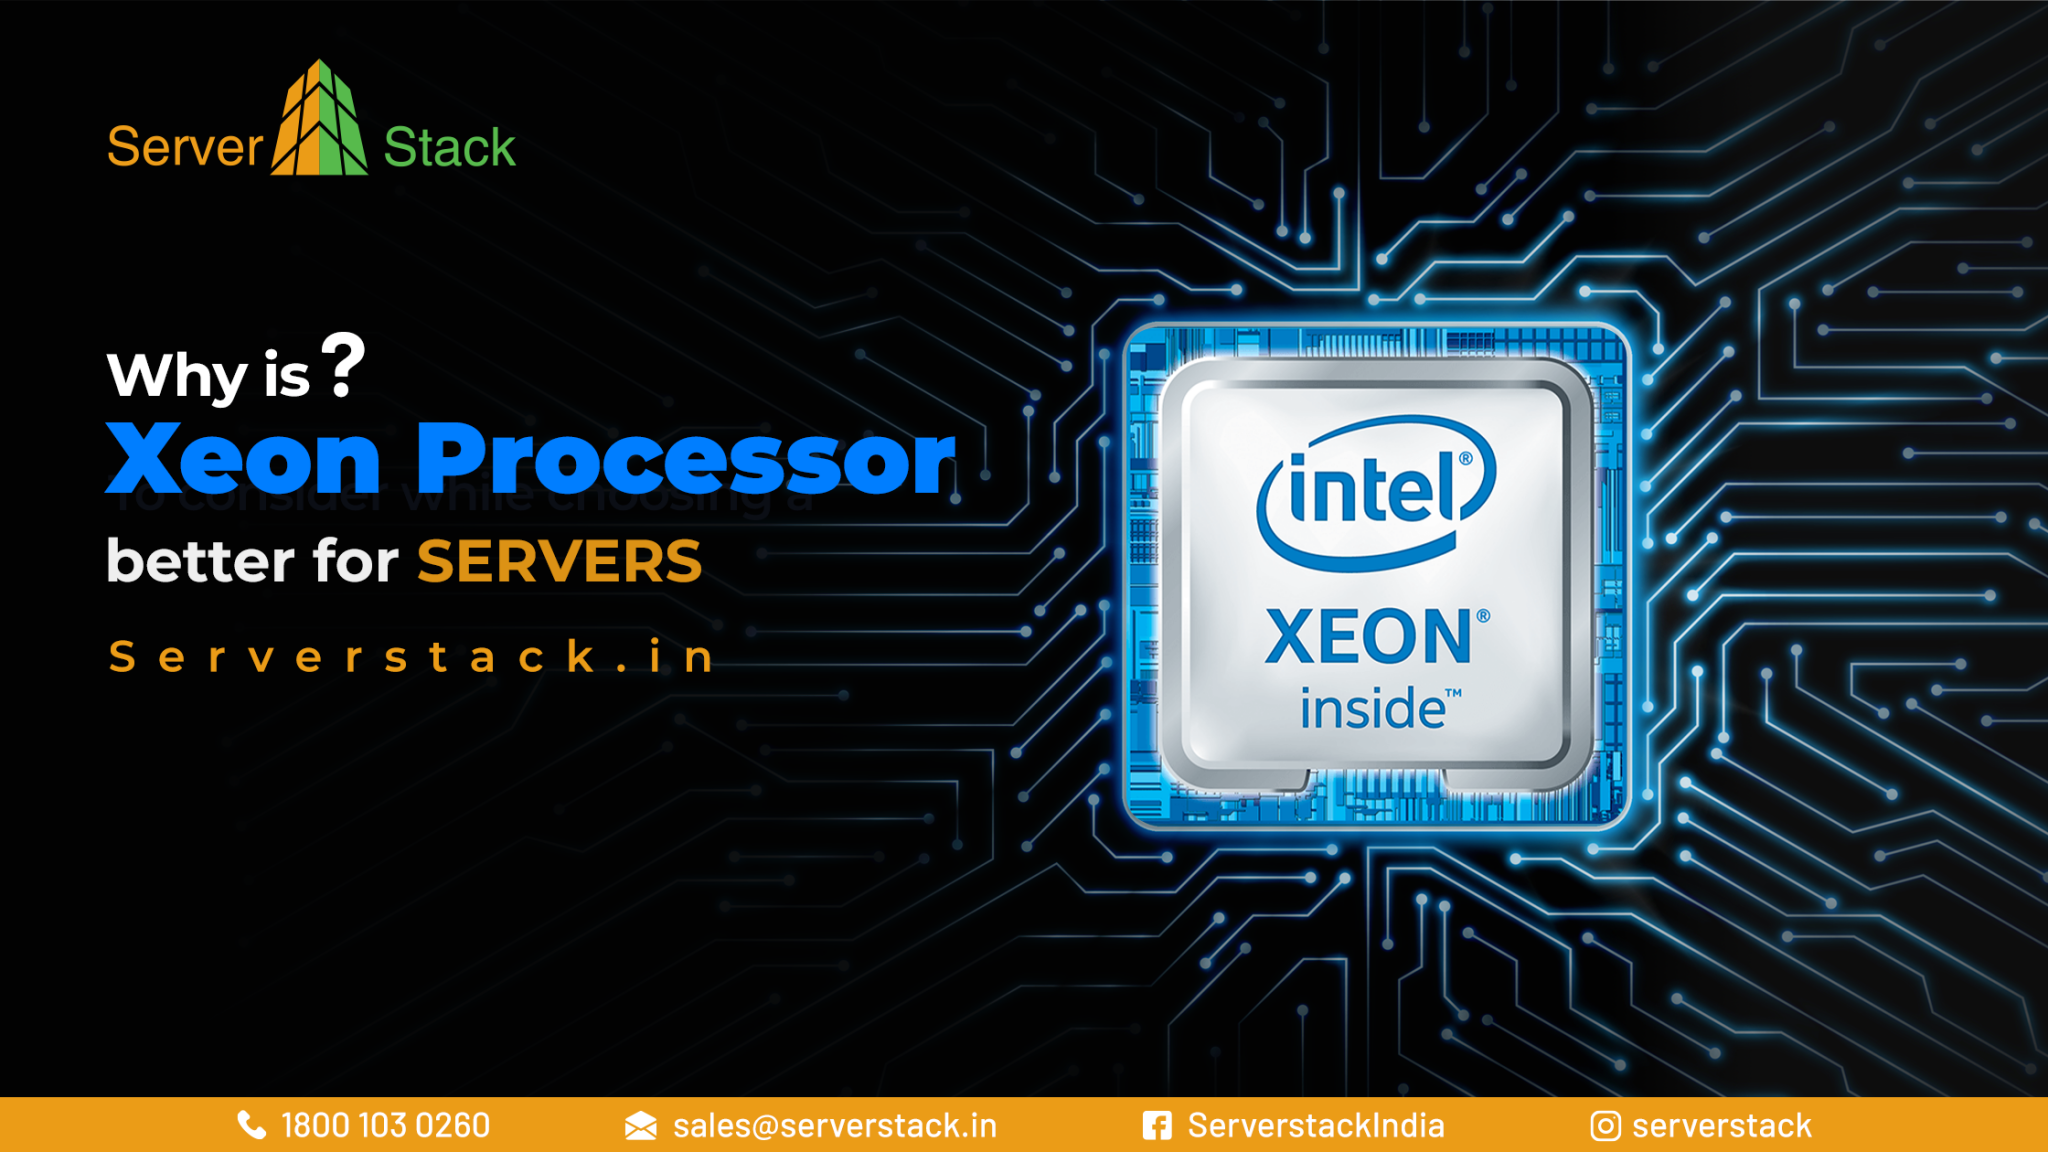 Why is Xeon processor better for servers?